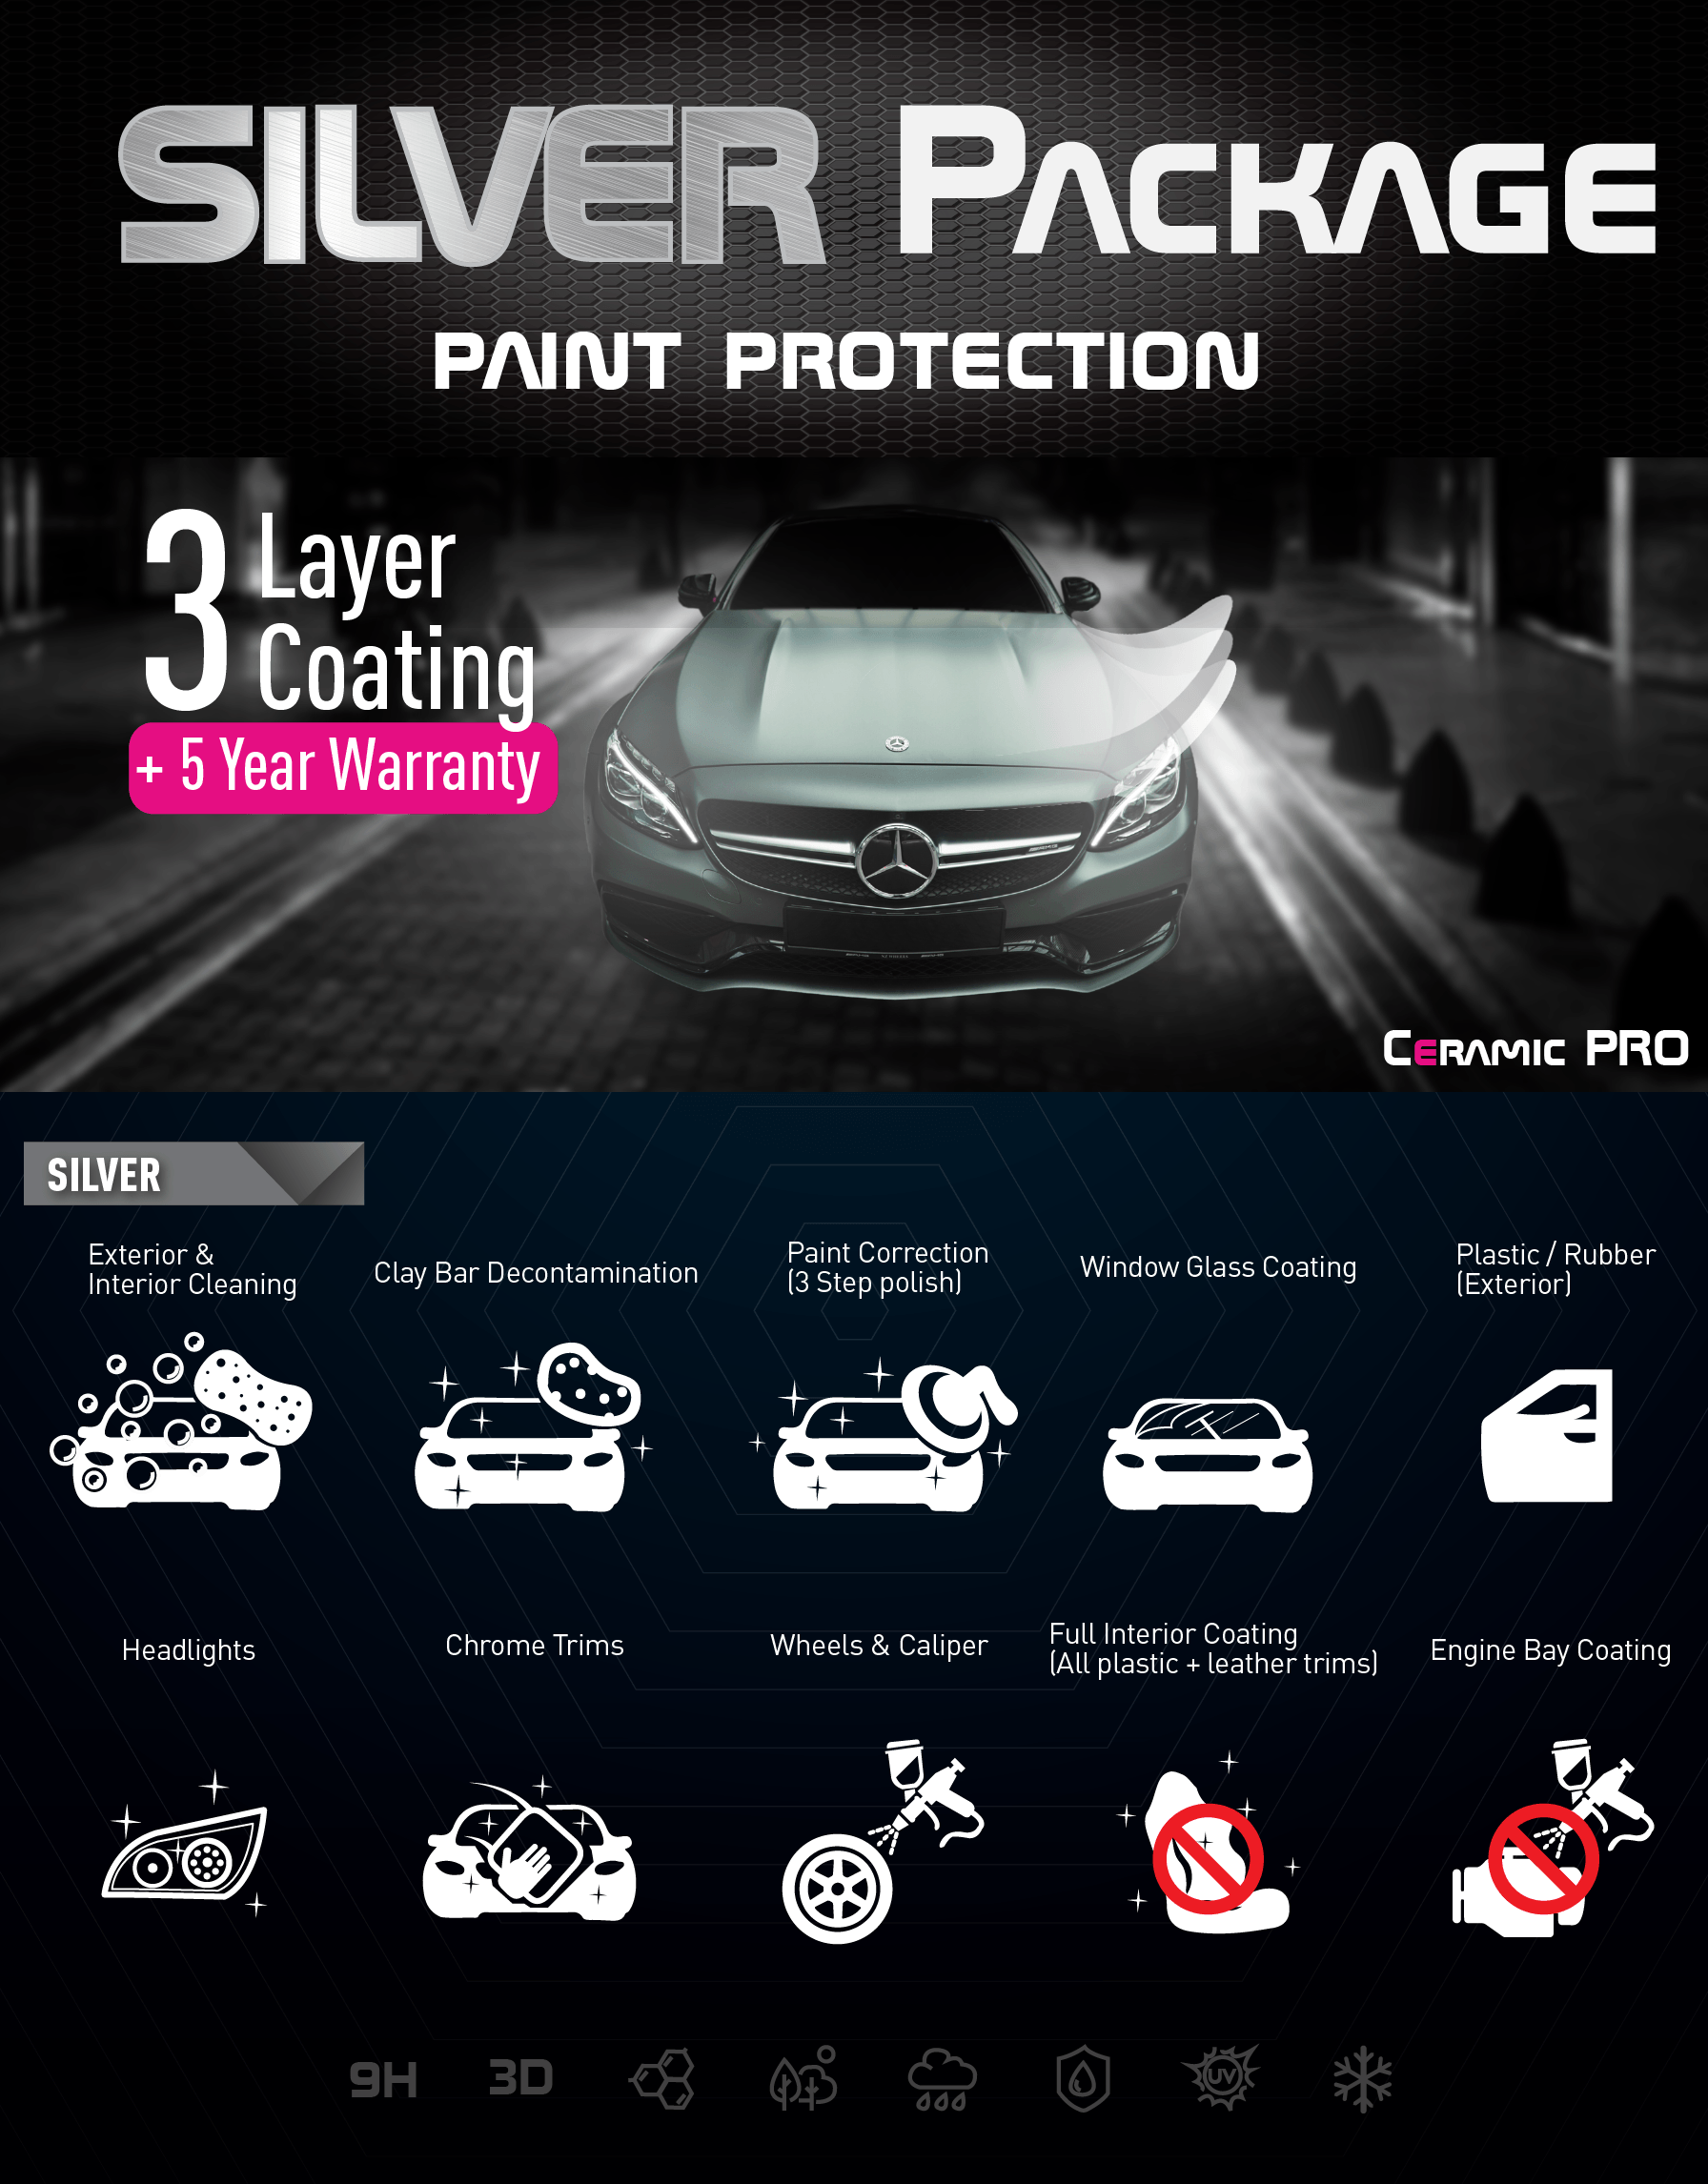 Ceramic Pro Malaysia - Sliver Package Paint Protection